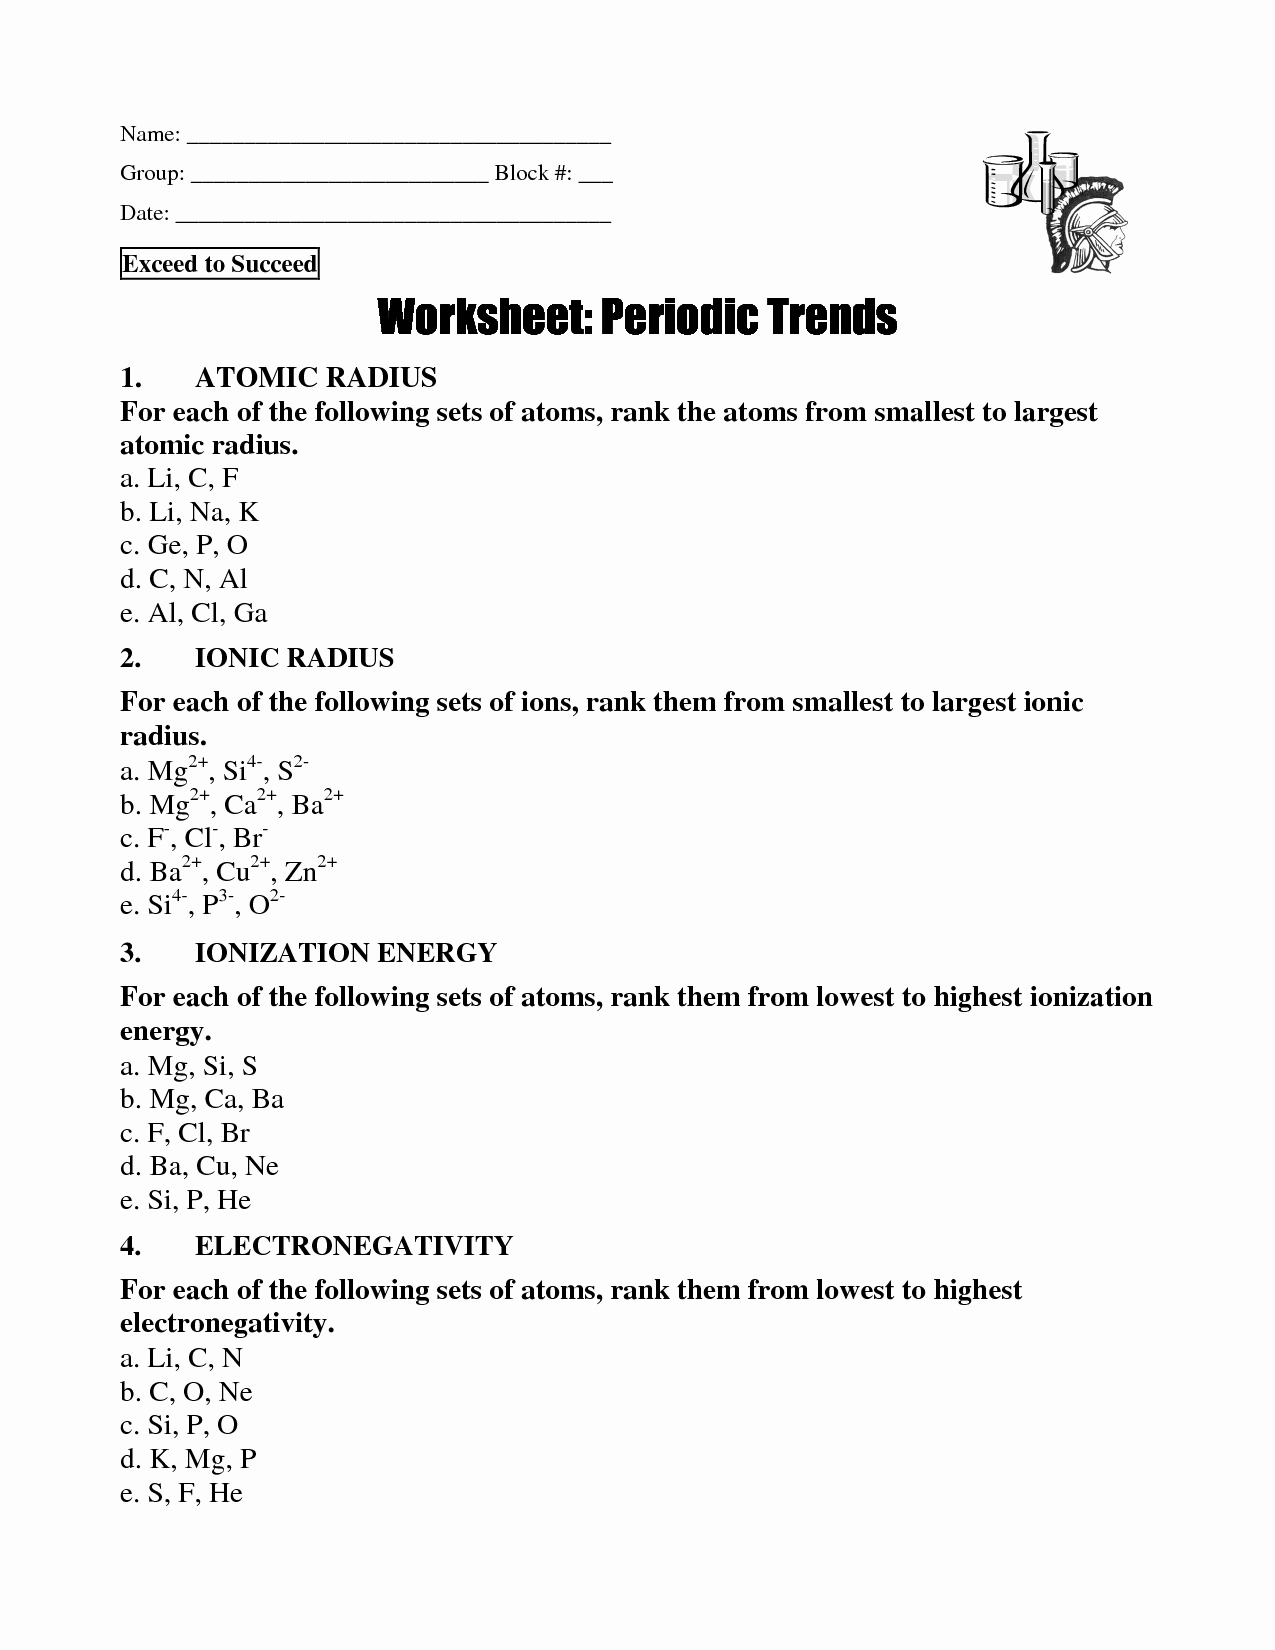 Worksheet Periodic Table Trends Beautiful 20 Best Of Periodic Trends Worksheet Answers Key